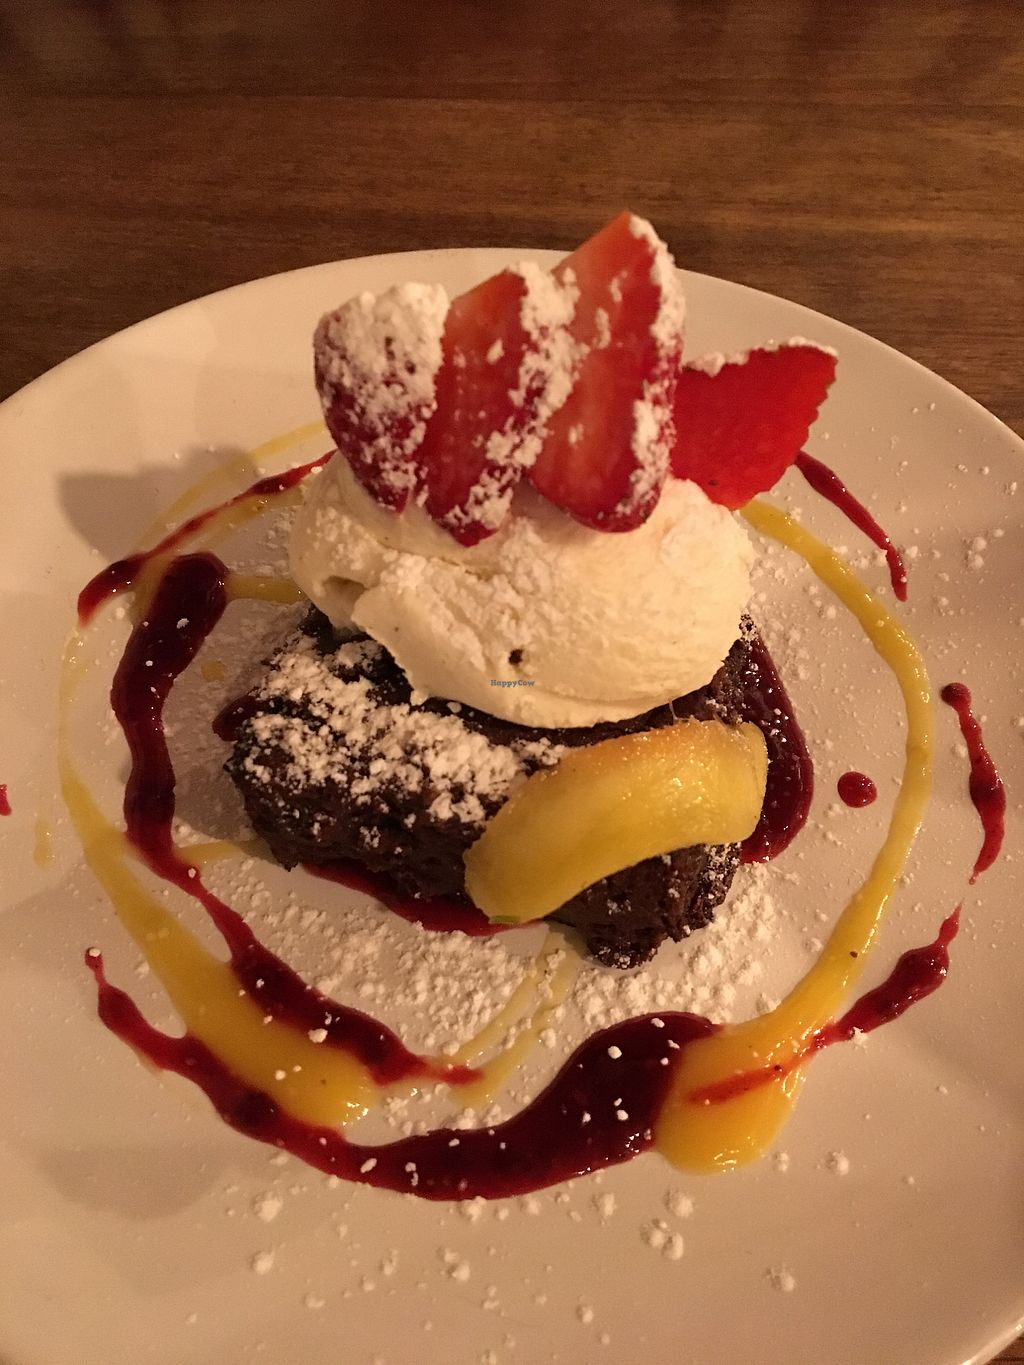 """Photo of Fusca   by <a href=""""/members/profile/LouP"""">LouP</a> <br/>The best chocolate brownie you'll ever eat!!! <br/> November 20, 2017  - <a href='/contact/abuse/image/77027/327504'>Report</a>"""